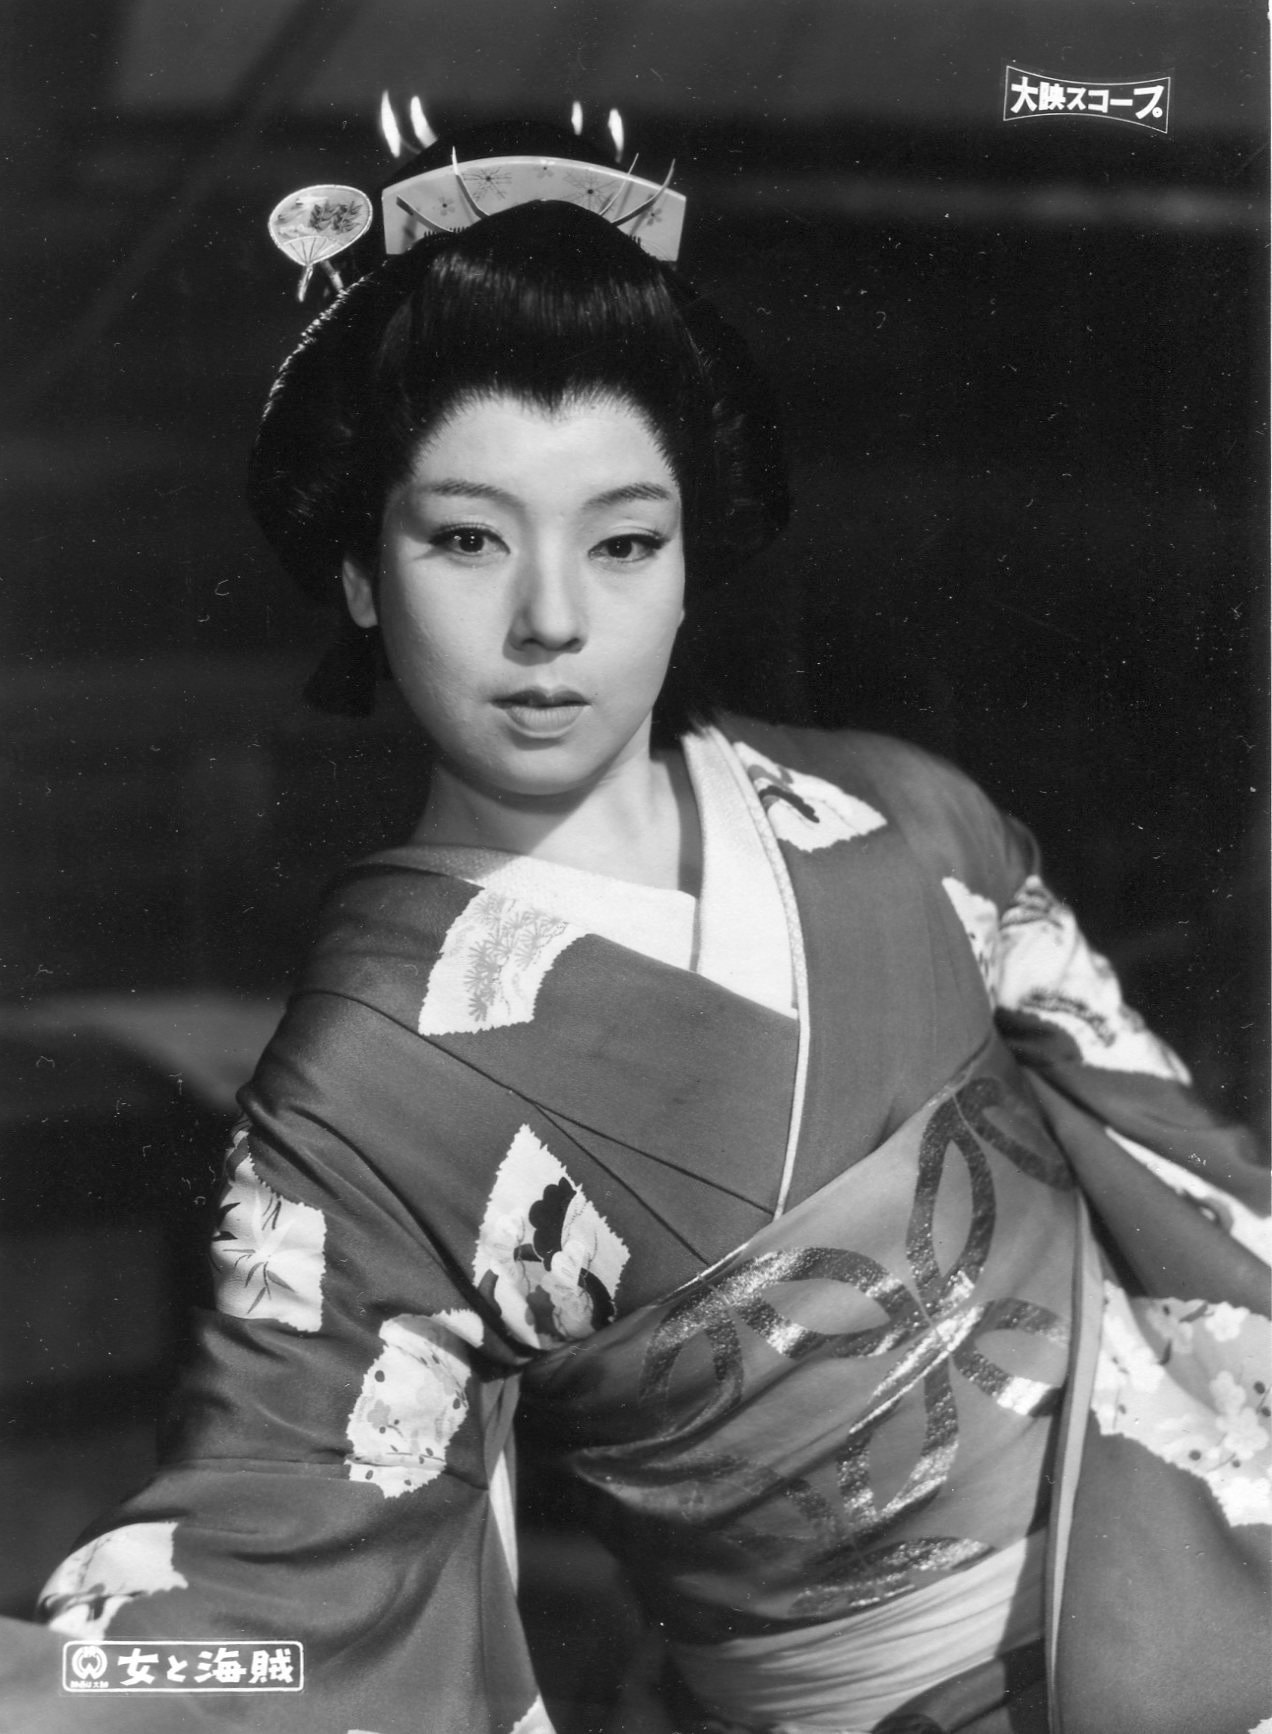 'Rashomon' actress Machiko Kyo dies at 95